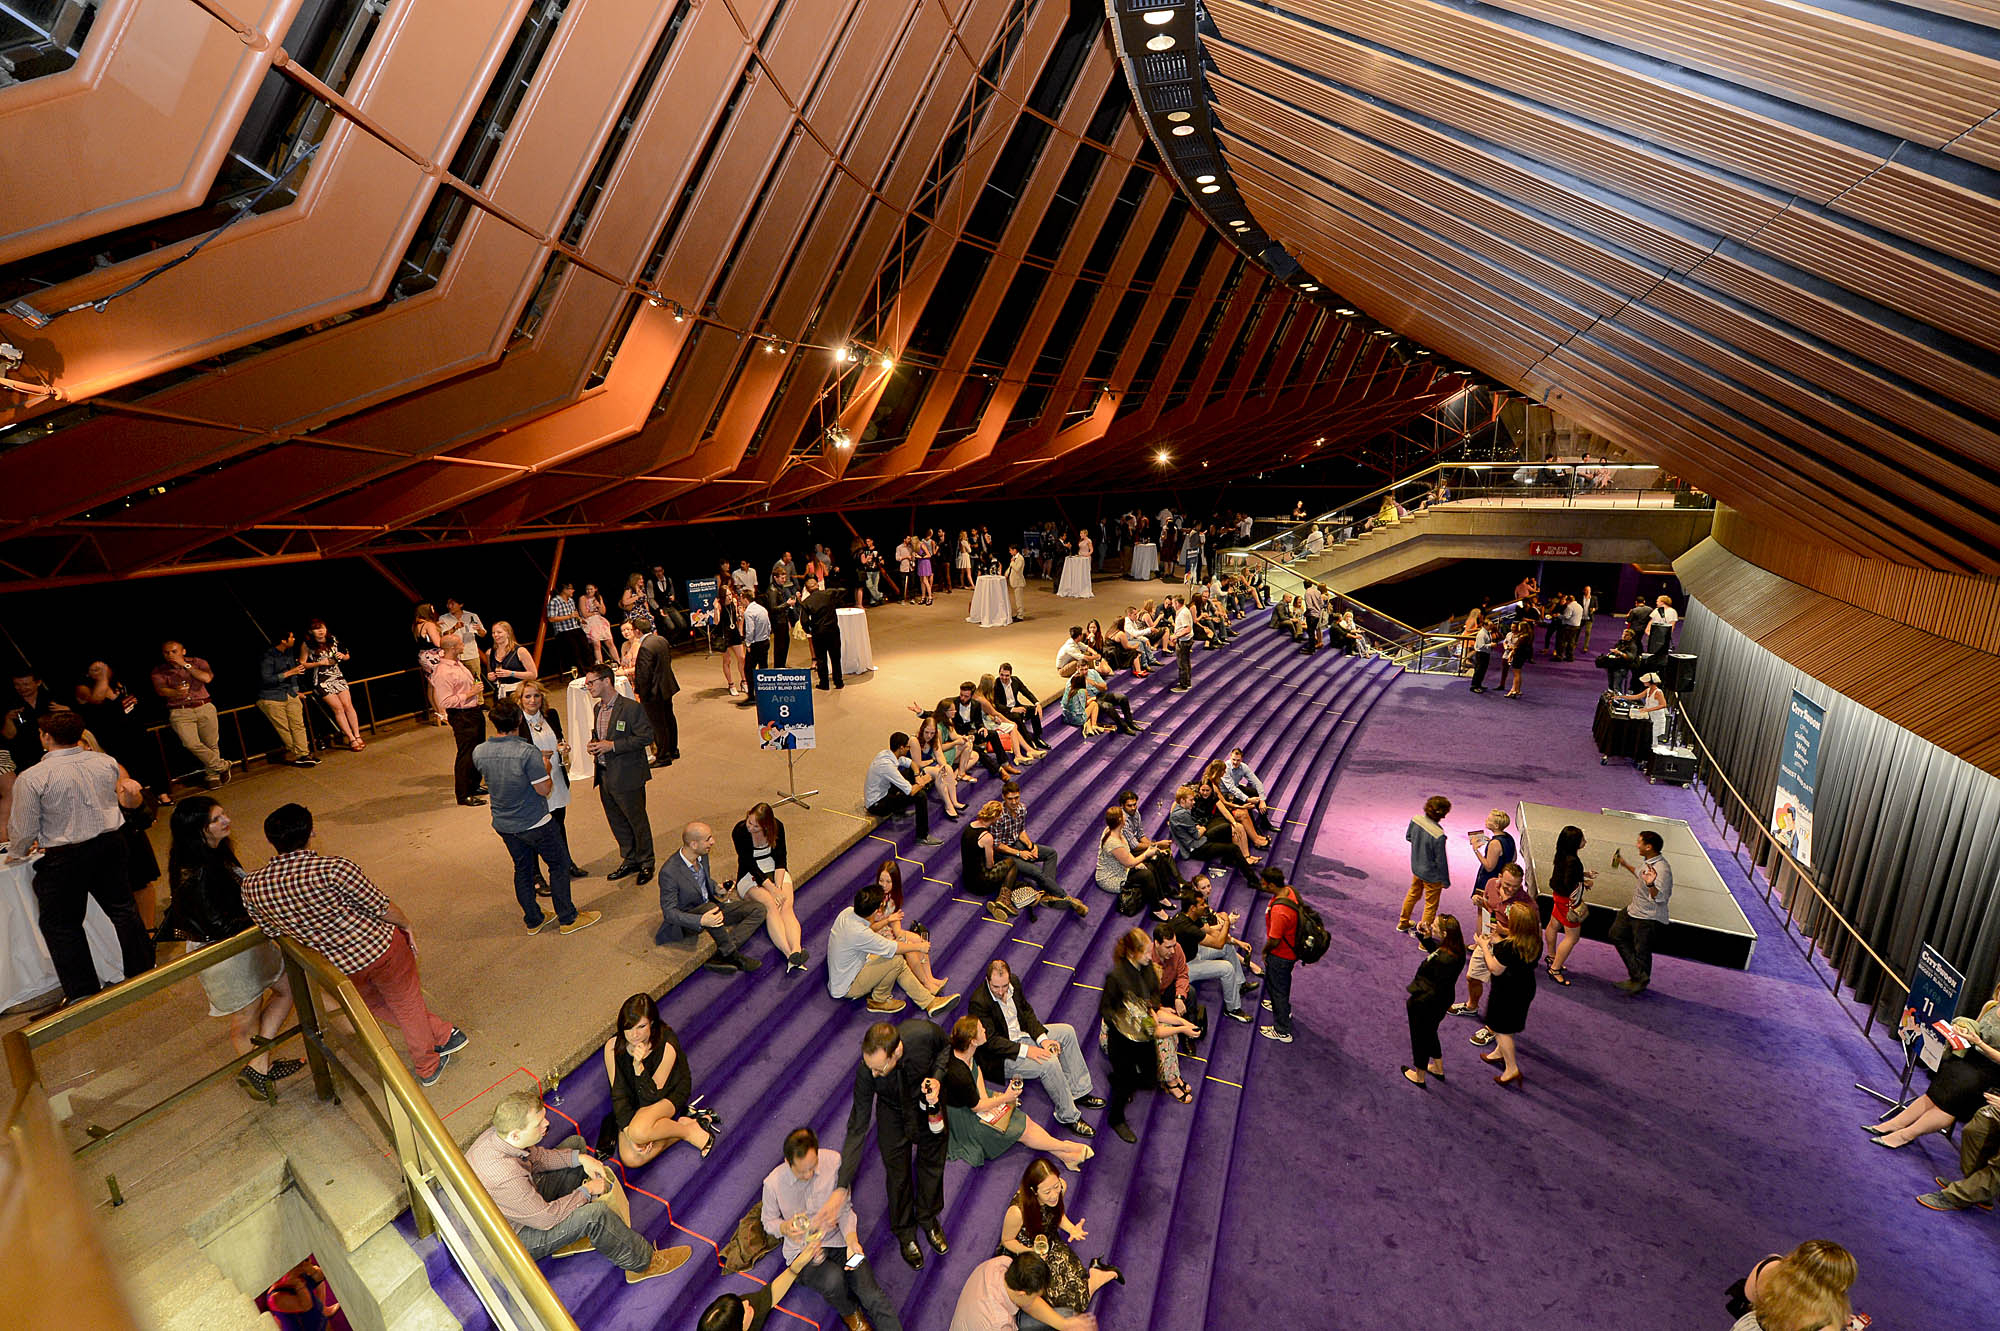 top level datingdating cityswoon style at the guinness world record for the biggest blind date at sydney opera house